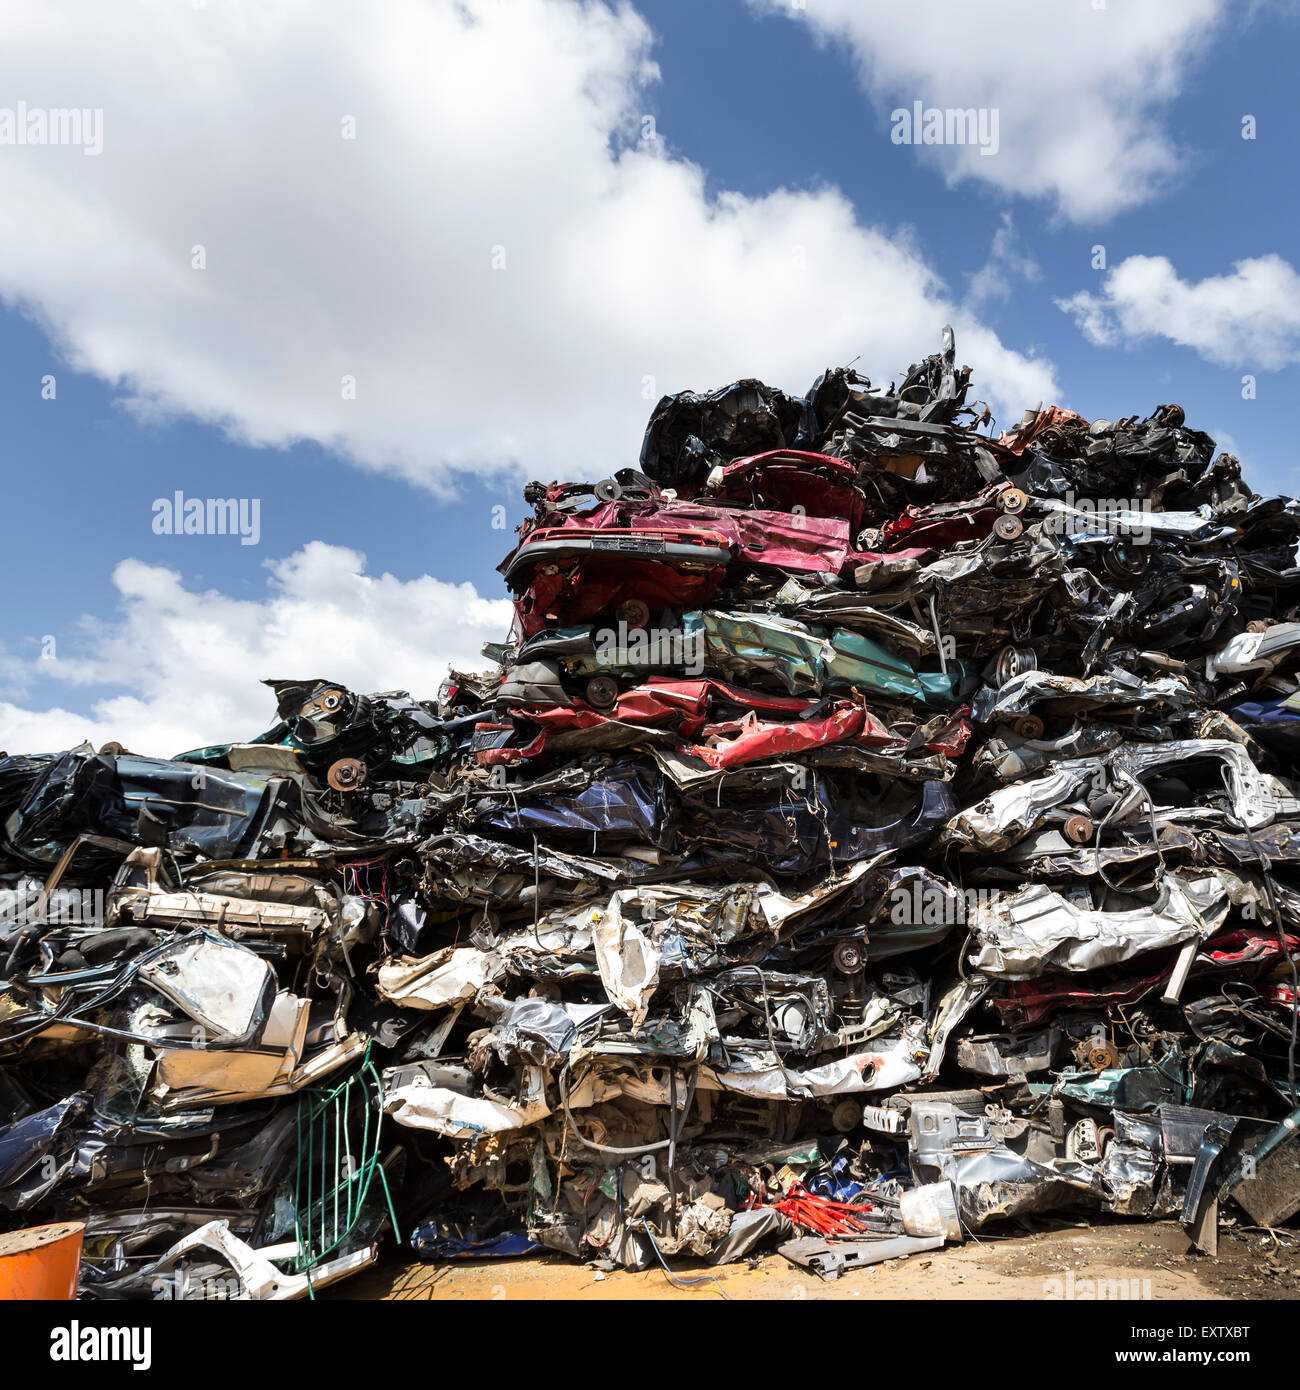 wrecks stockfotos wrecks bilder alamy. Black Bedroom Furniture Sets. Home Design Ideas